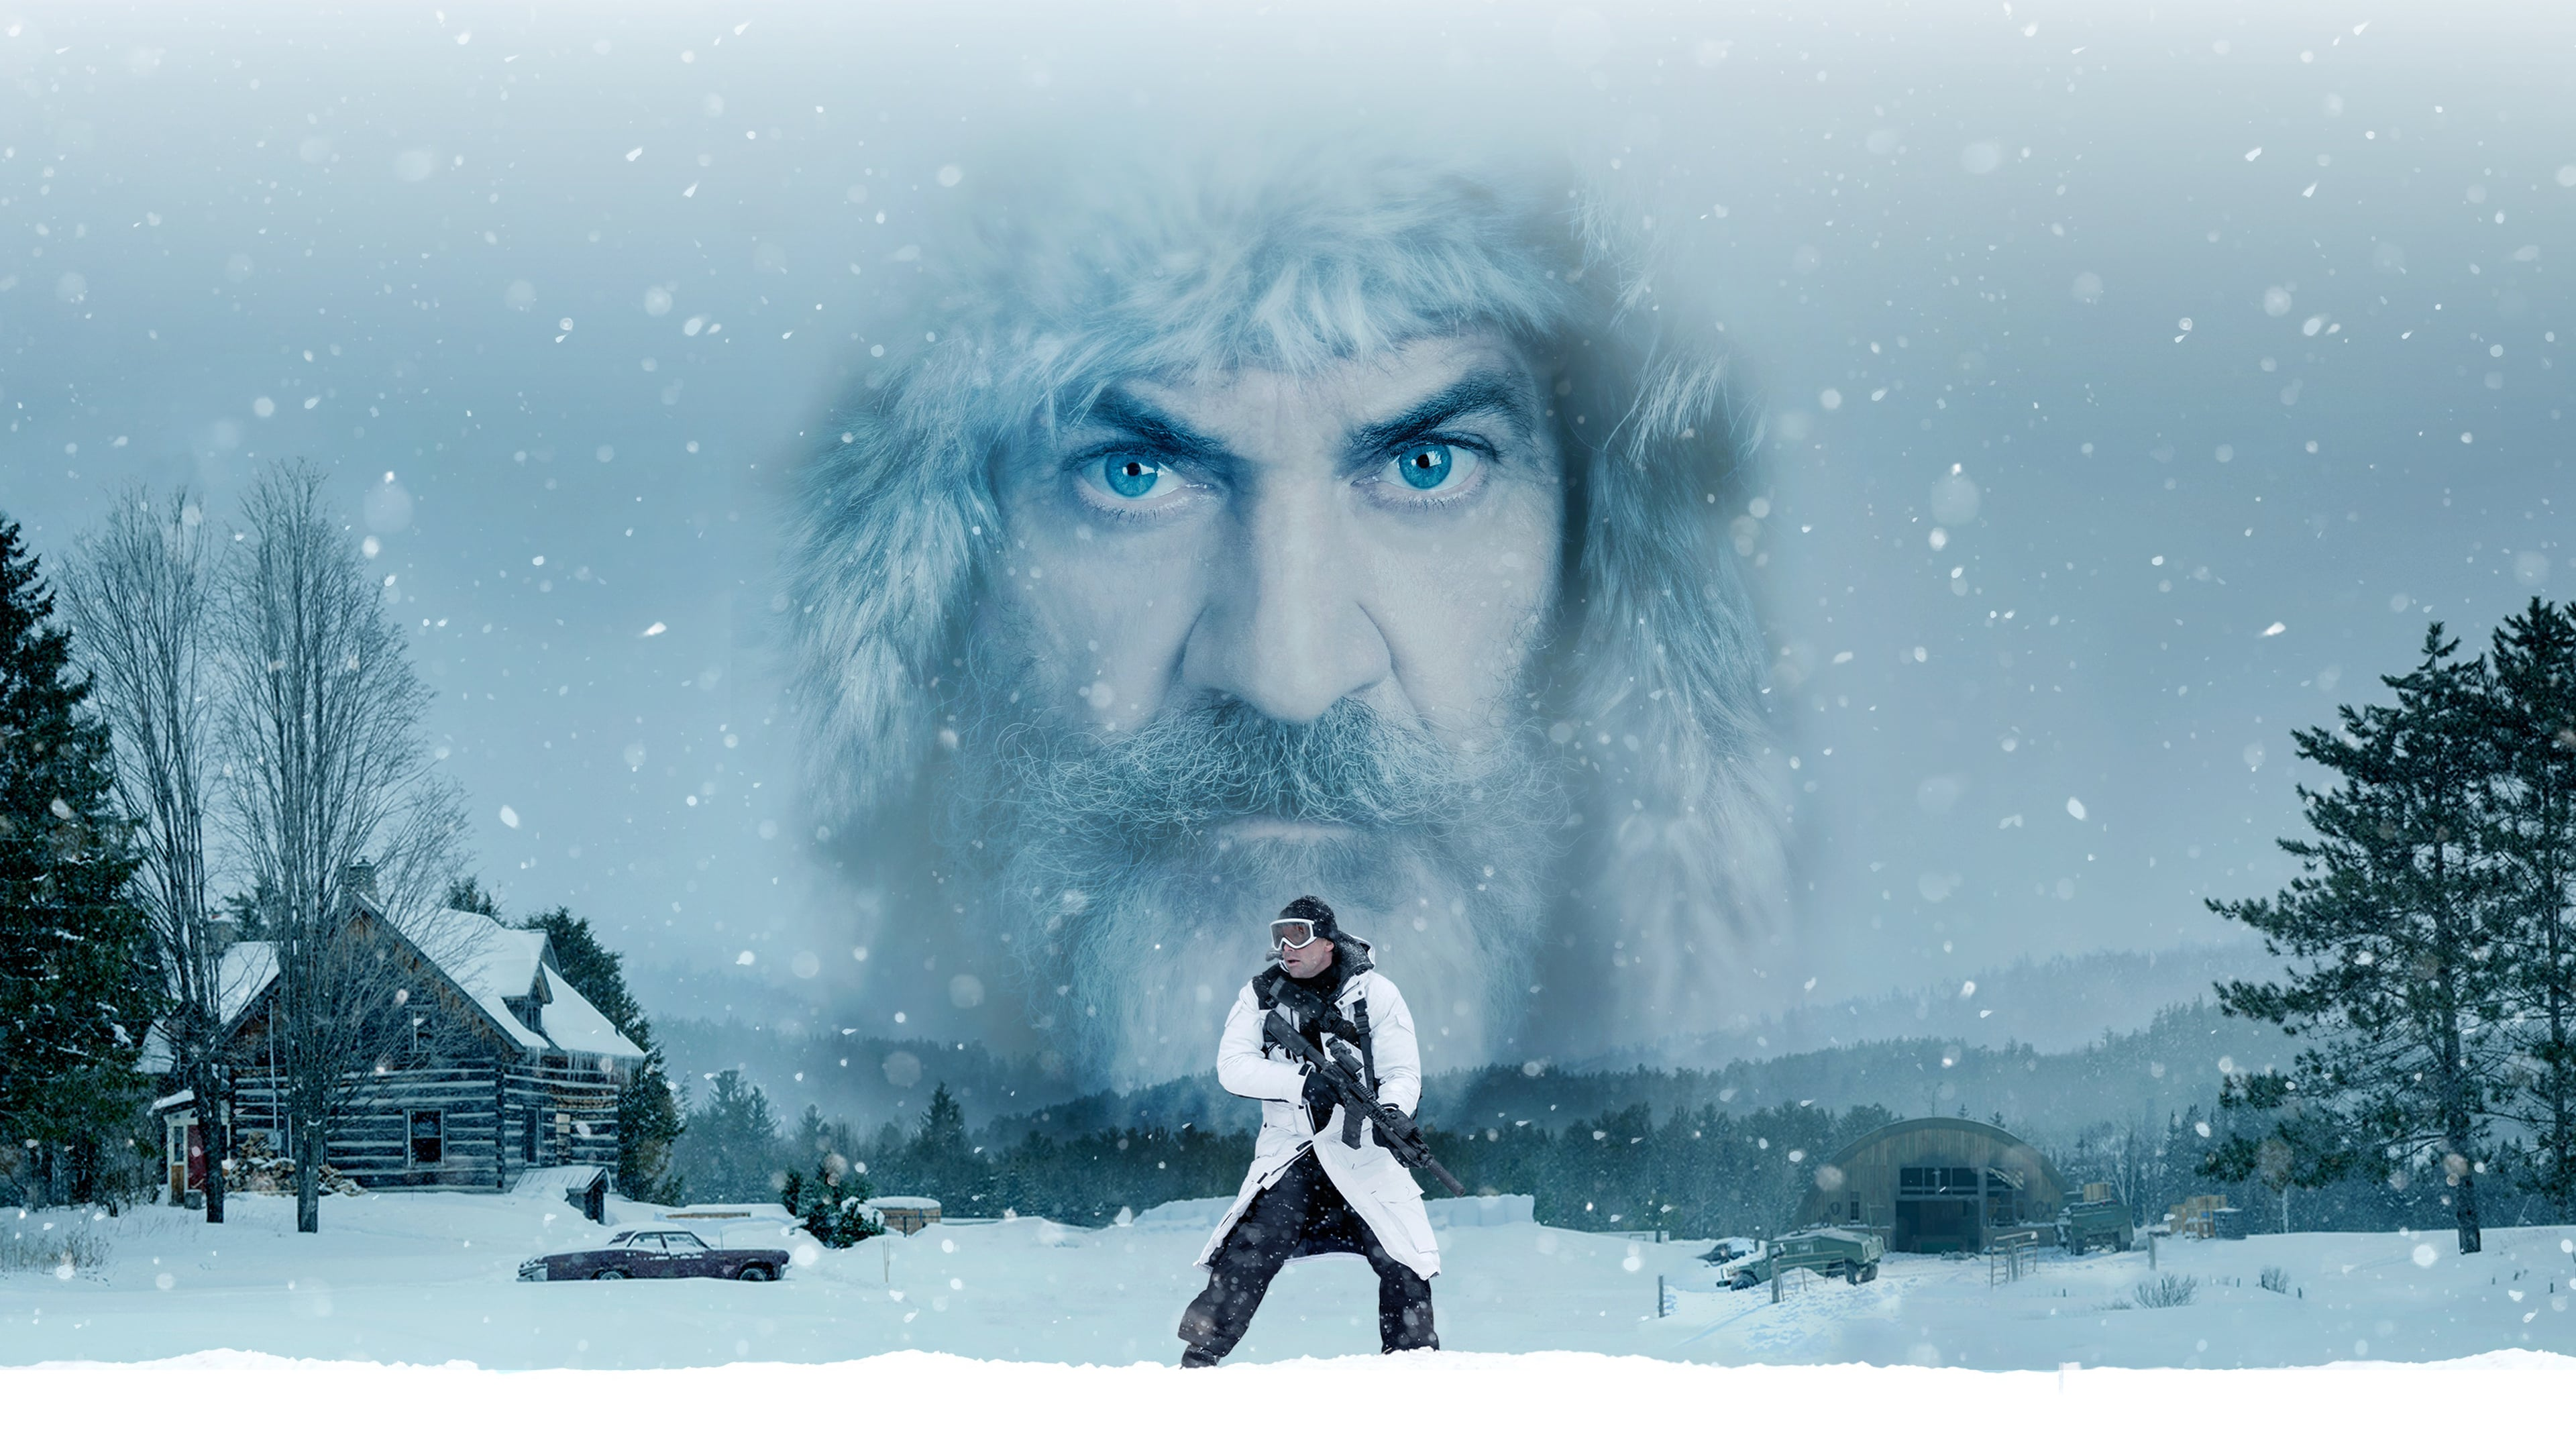 [Film review] FATMAN: Who better to spread the goodwill of the season and peace to all than Mel Gibson?